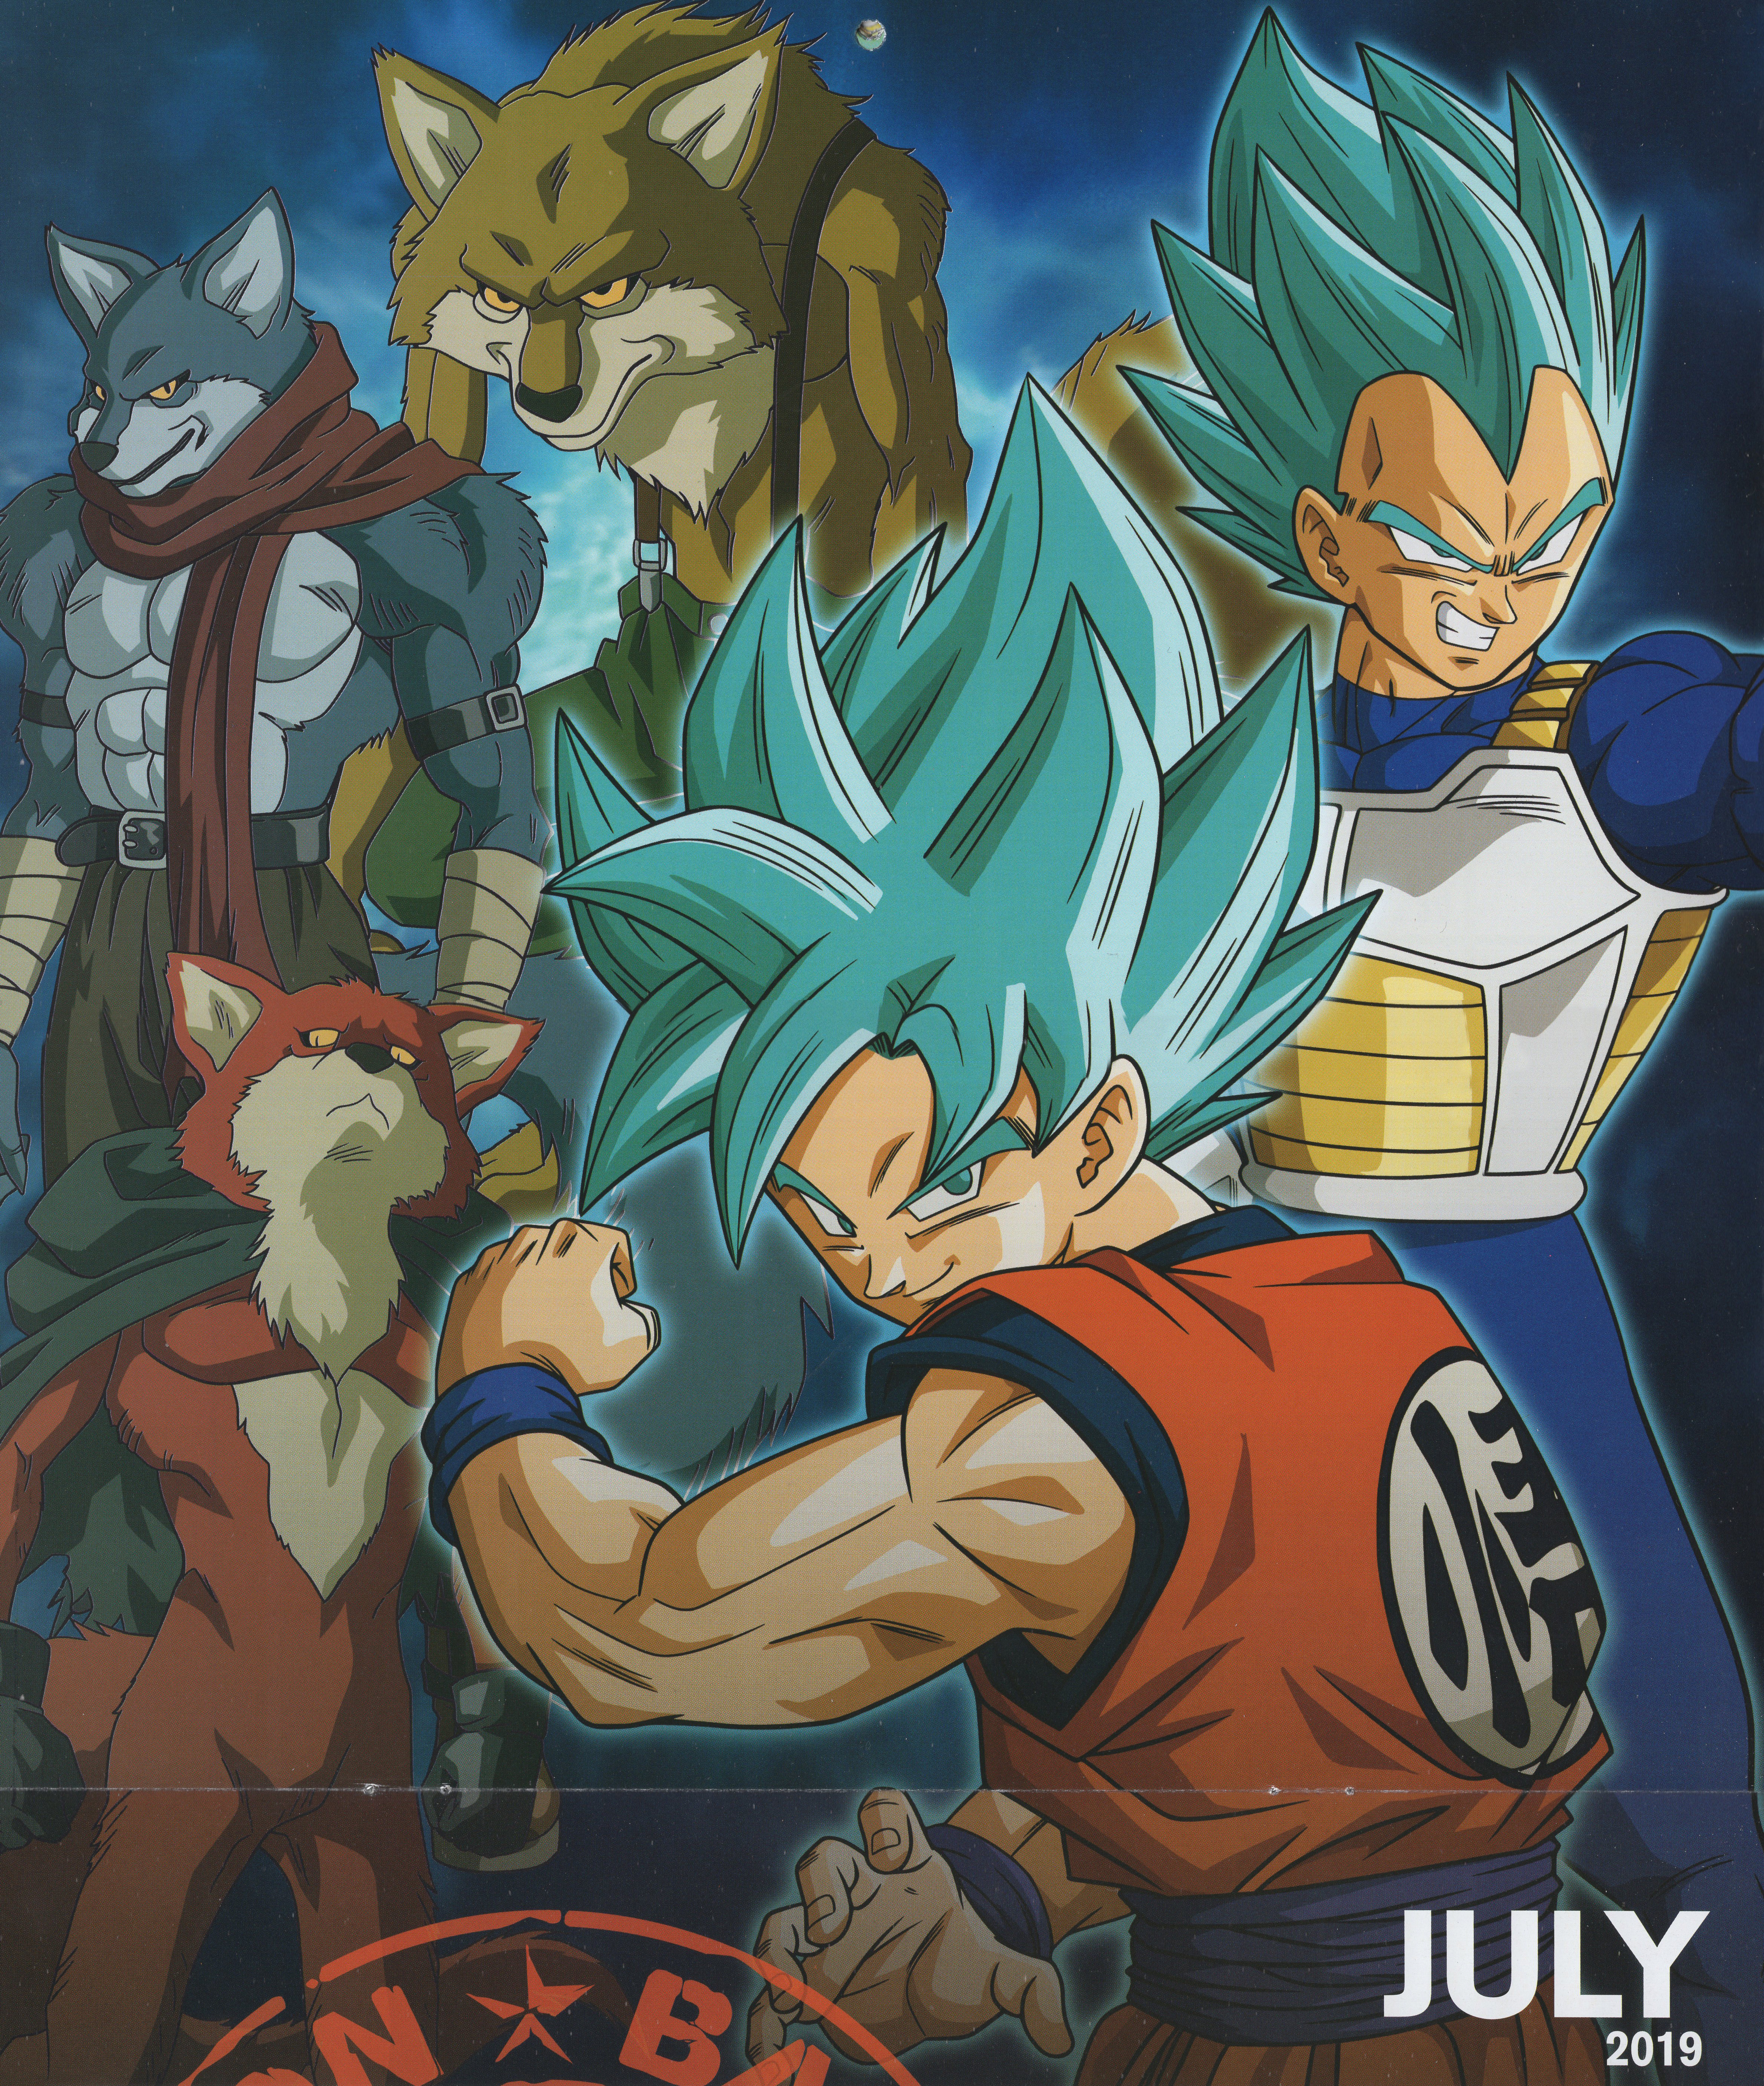 07 Goku & Vegeta vs Universe 9 Wolves (Dragon Ball Super 2019 English Calendar)